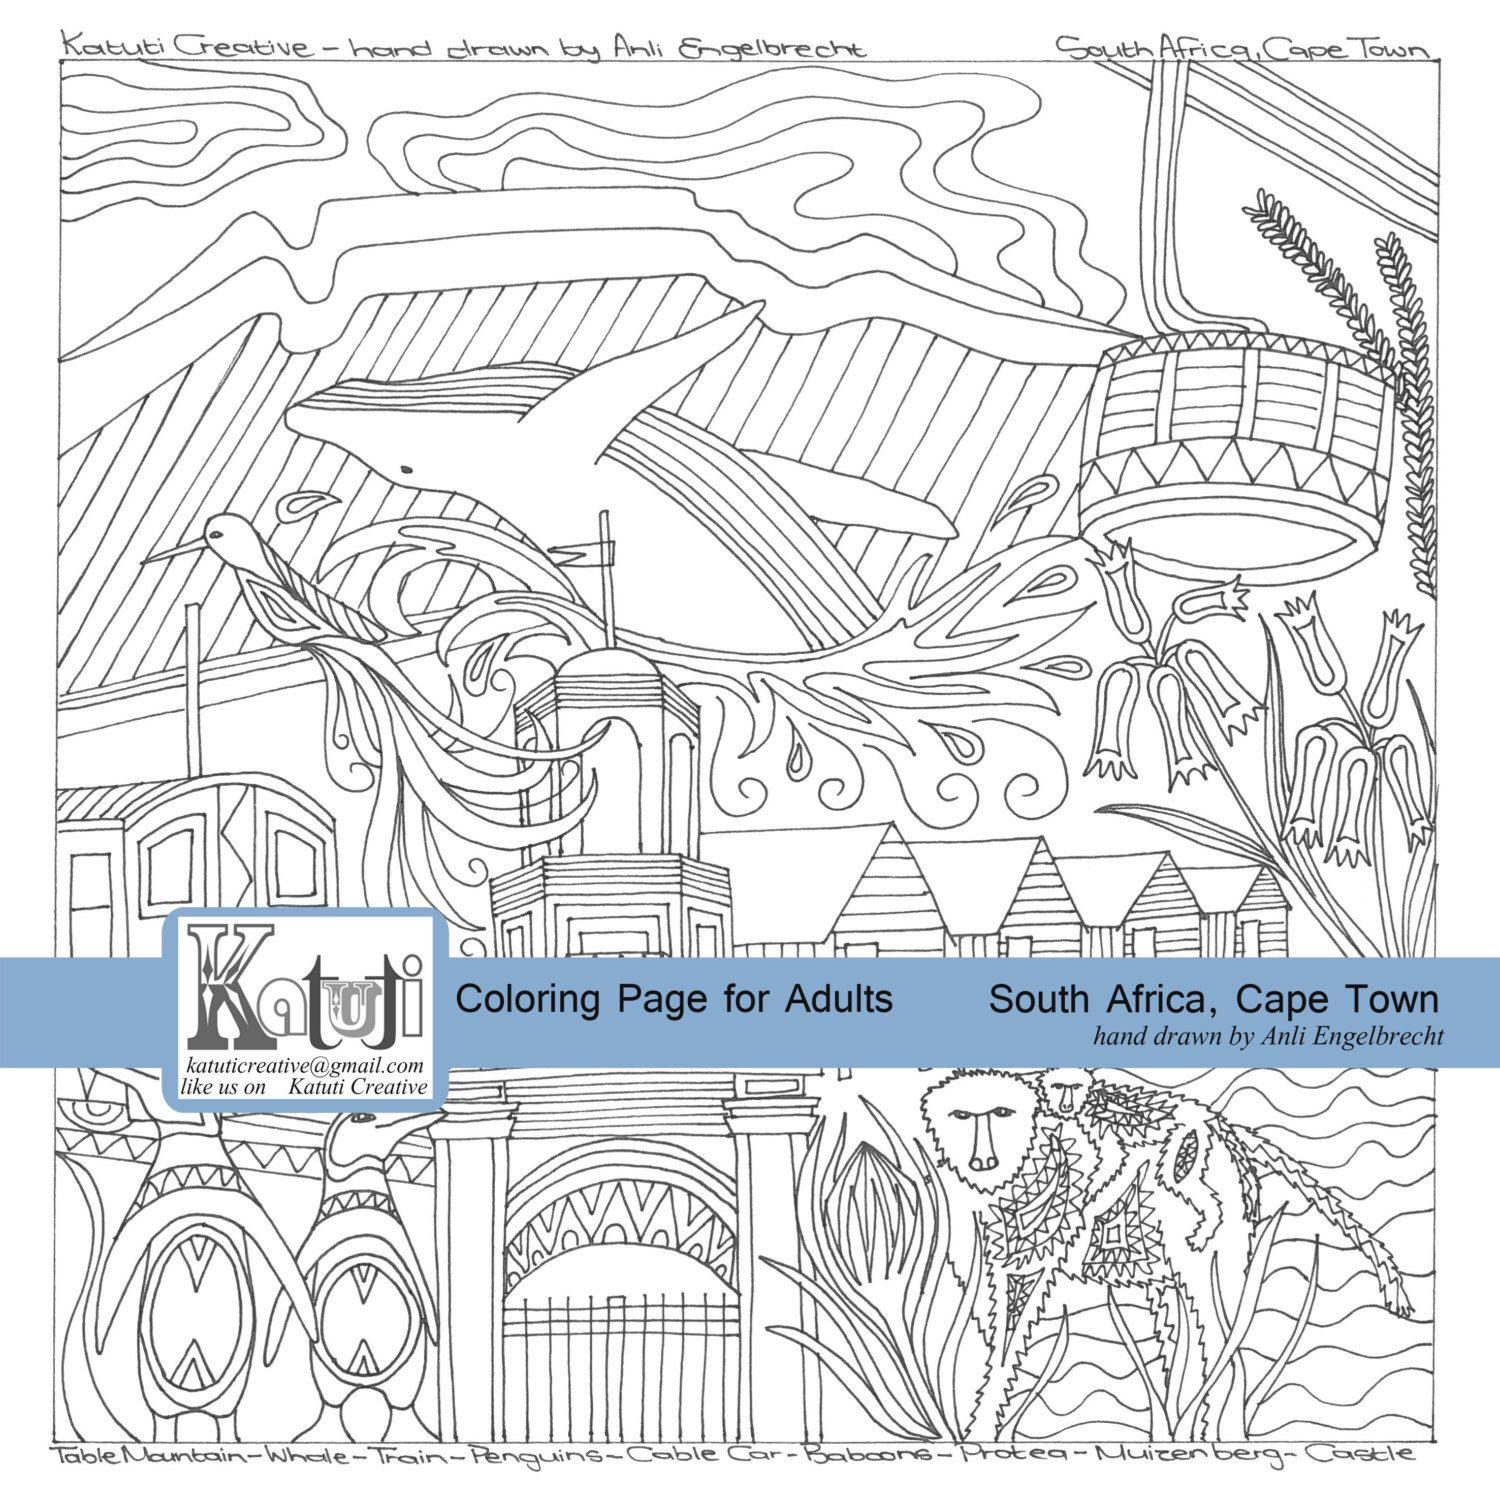 Coloring pages instant download south african city cape town by katutidigital on etsy https